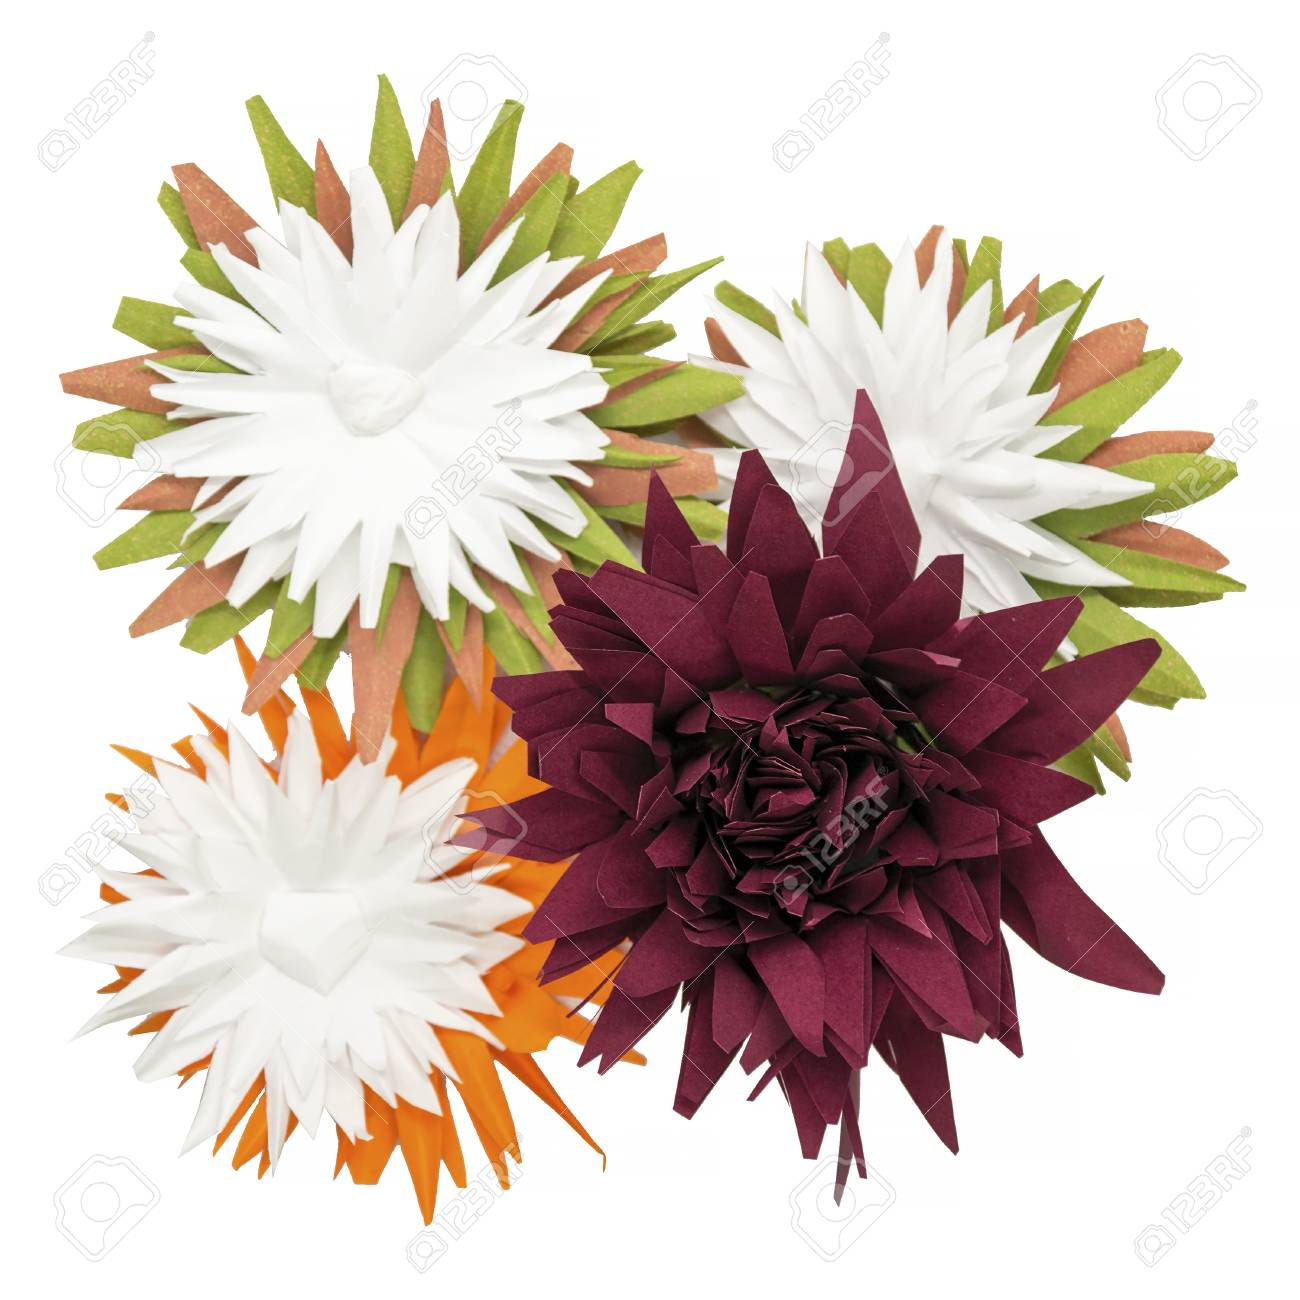 Colorful Handmade Paper Flowers On White Background Creative